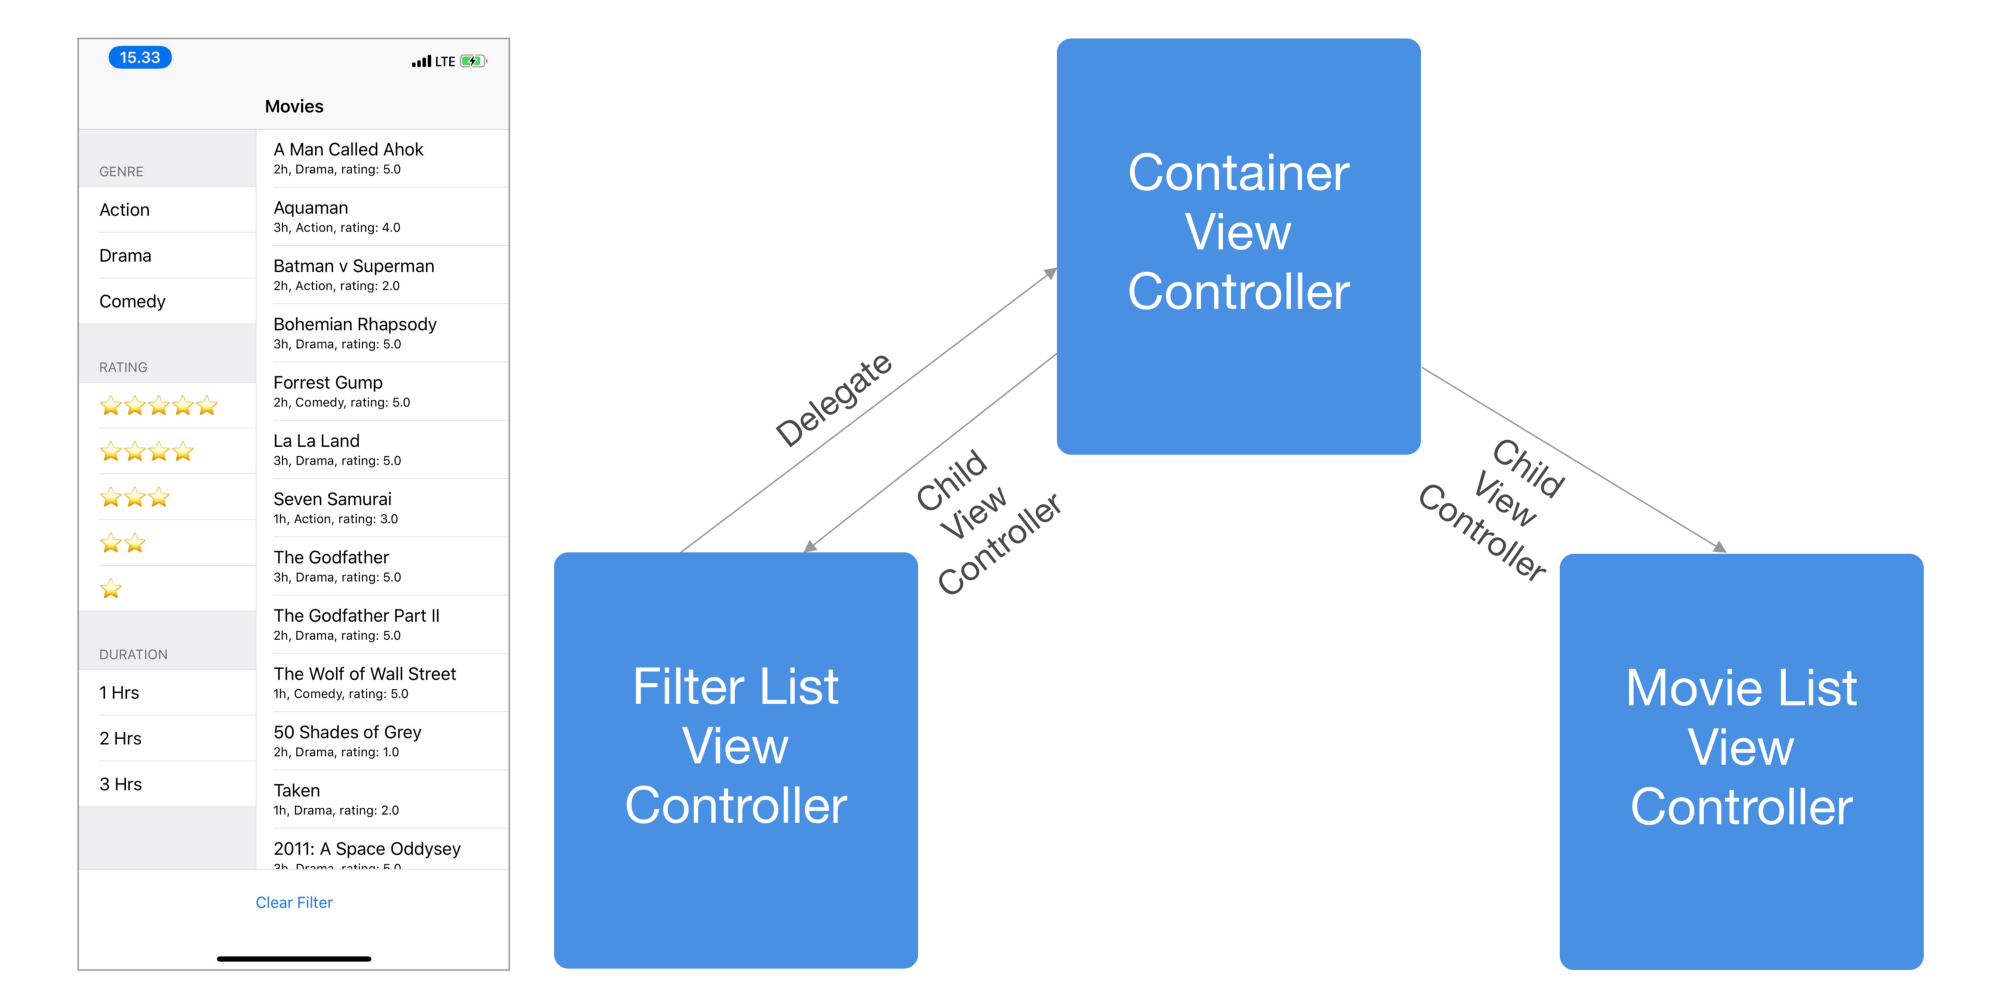 Avoiding Massive View Controller using Containment & Child View Controller 1